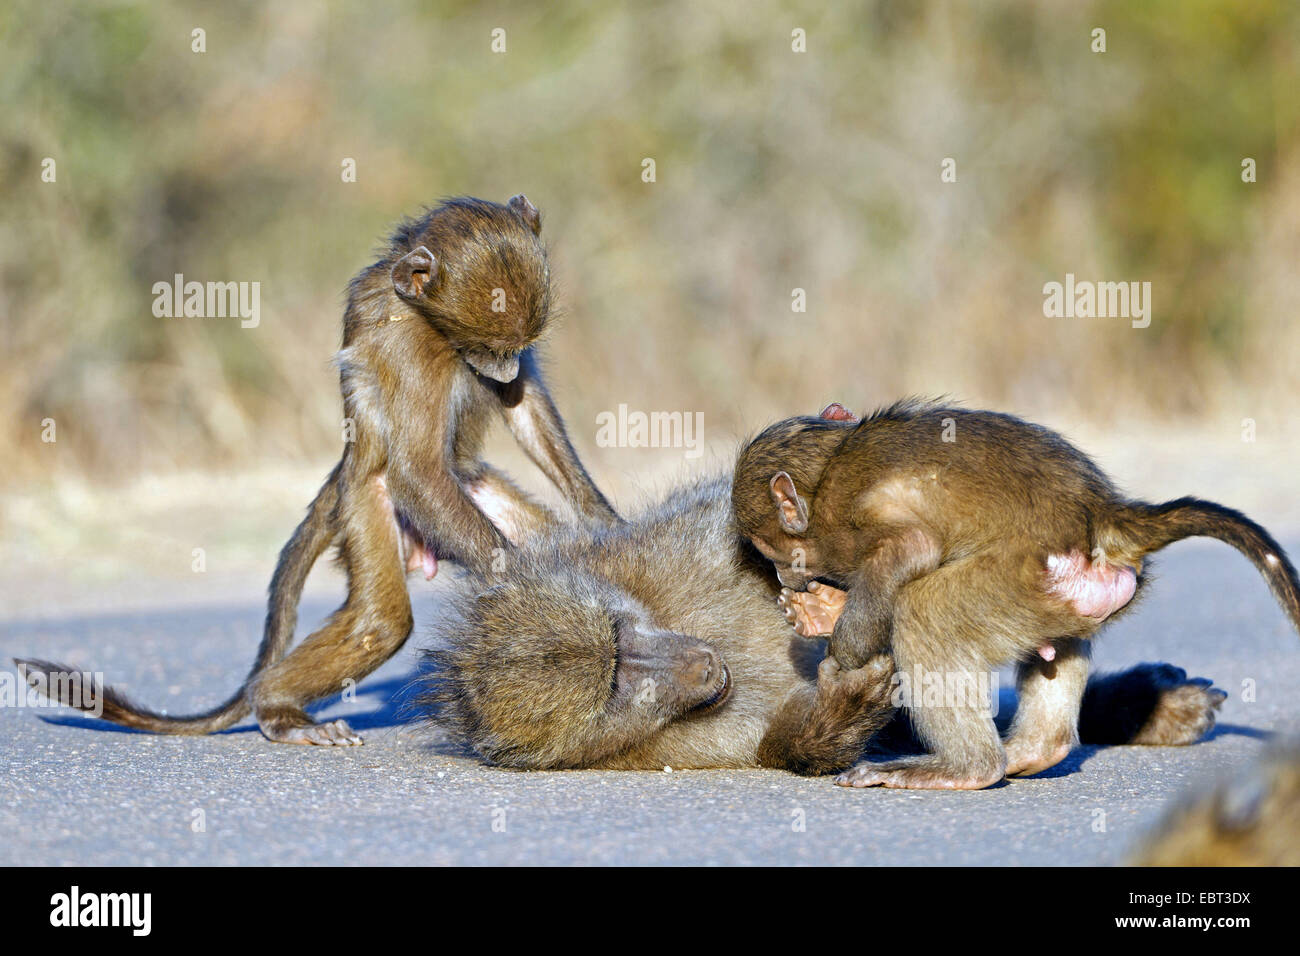 Chacma baboon, anubius baboon, olive baboon (Papio ursinus, Papio cynocephalus ursinus), beeing teased by two young - Stock Image